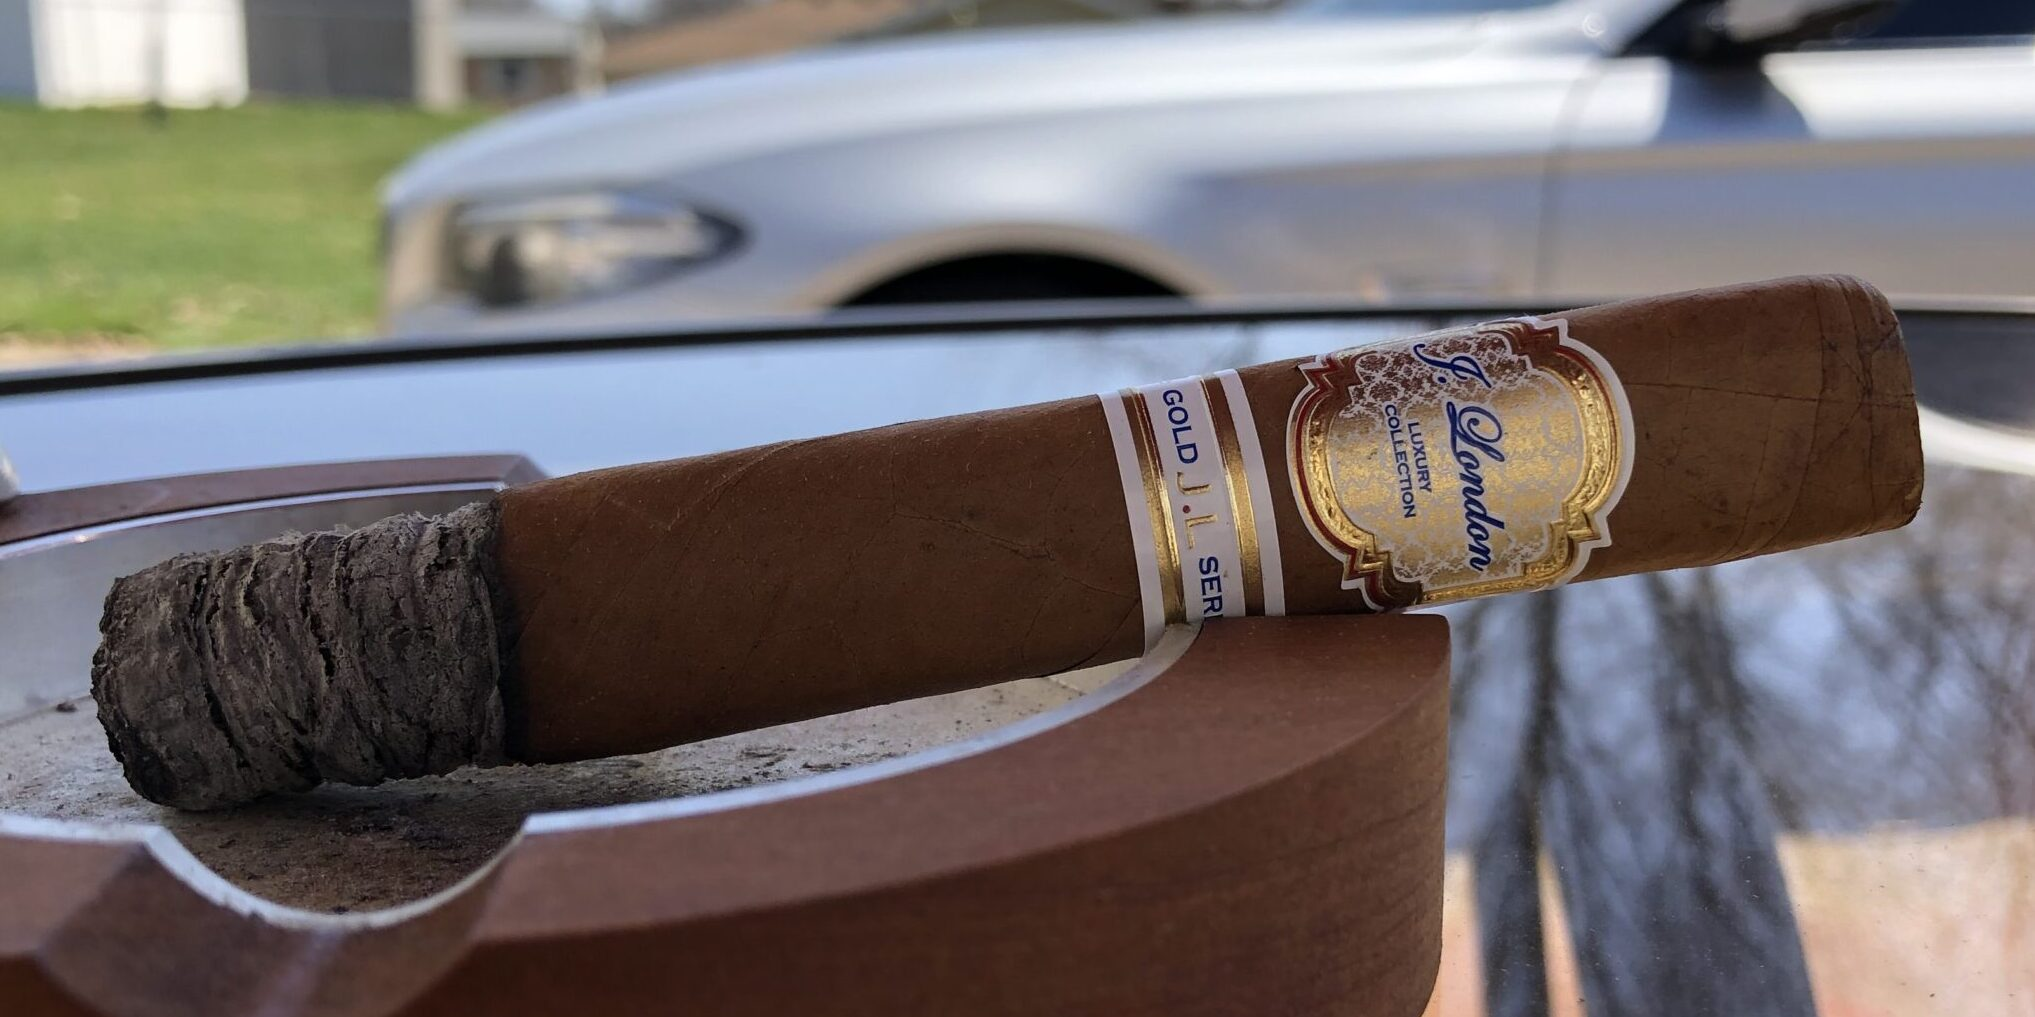 You are currently viewing J. London Gold Series Box-Pressed Robusto Cigar Review